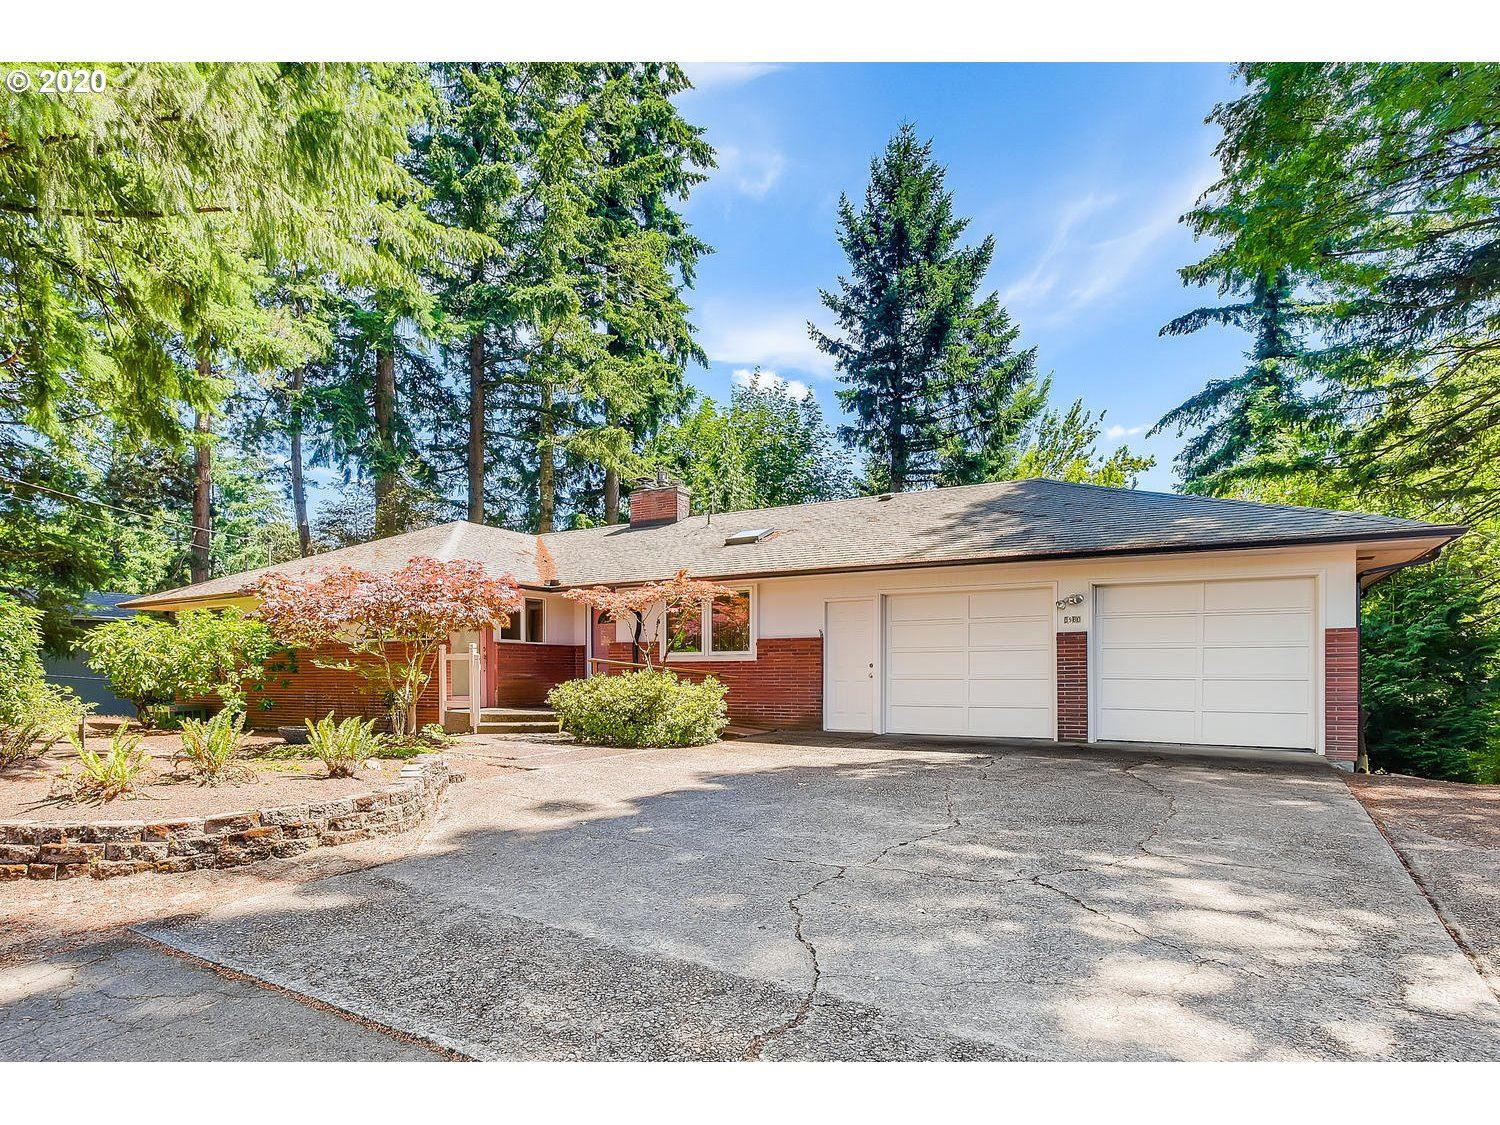 8980 NW CORNELL RD, Portland, OR 97229 - MLS#: 20047507